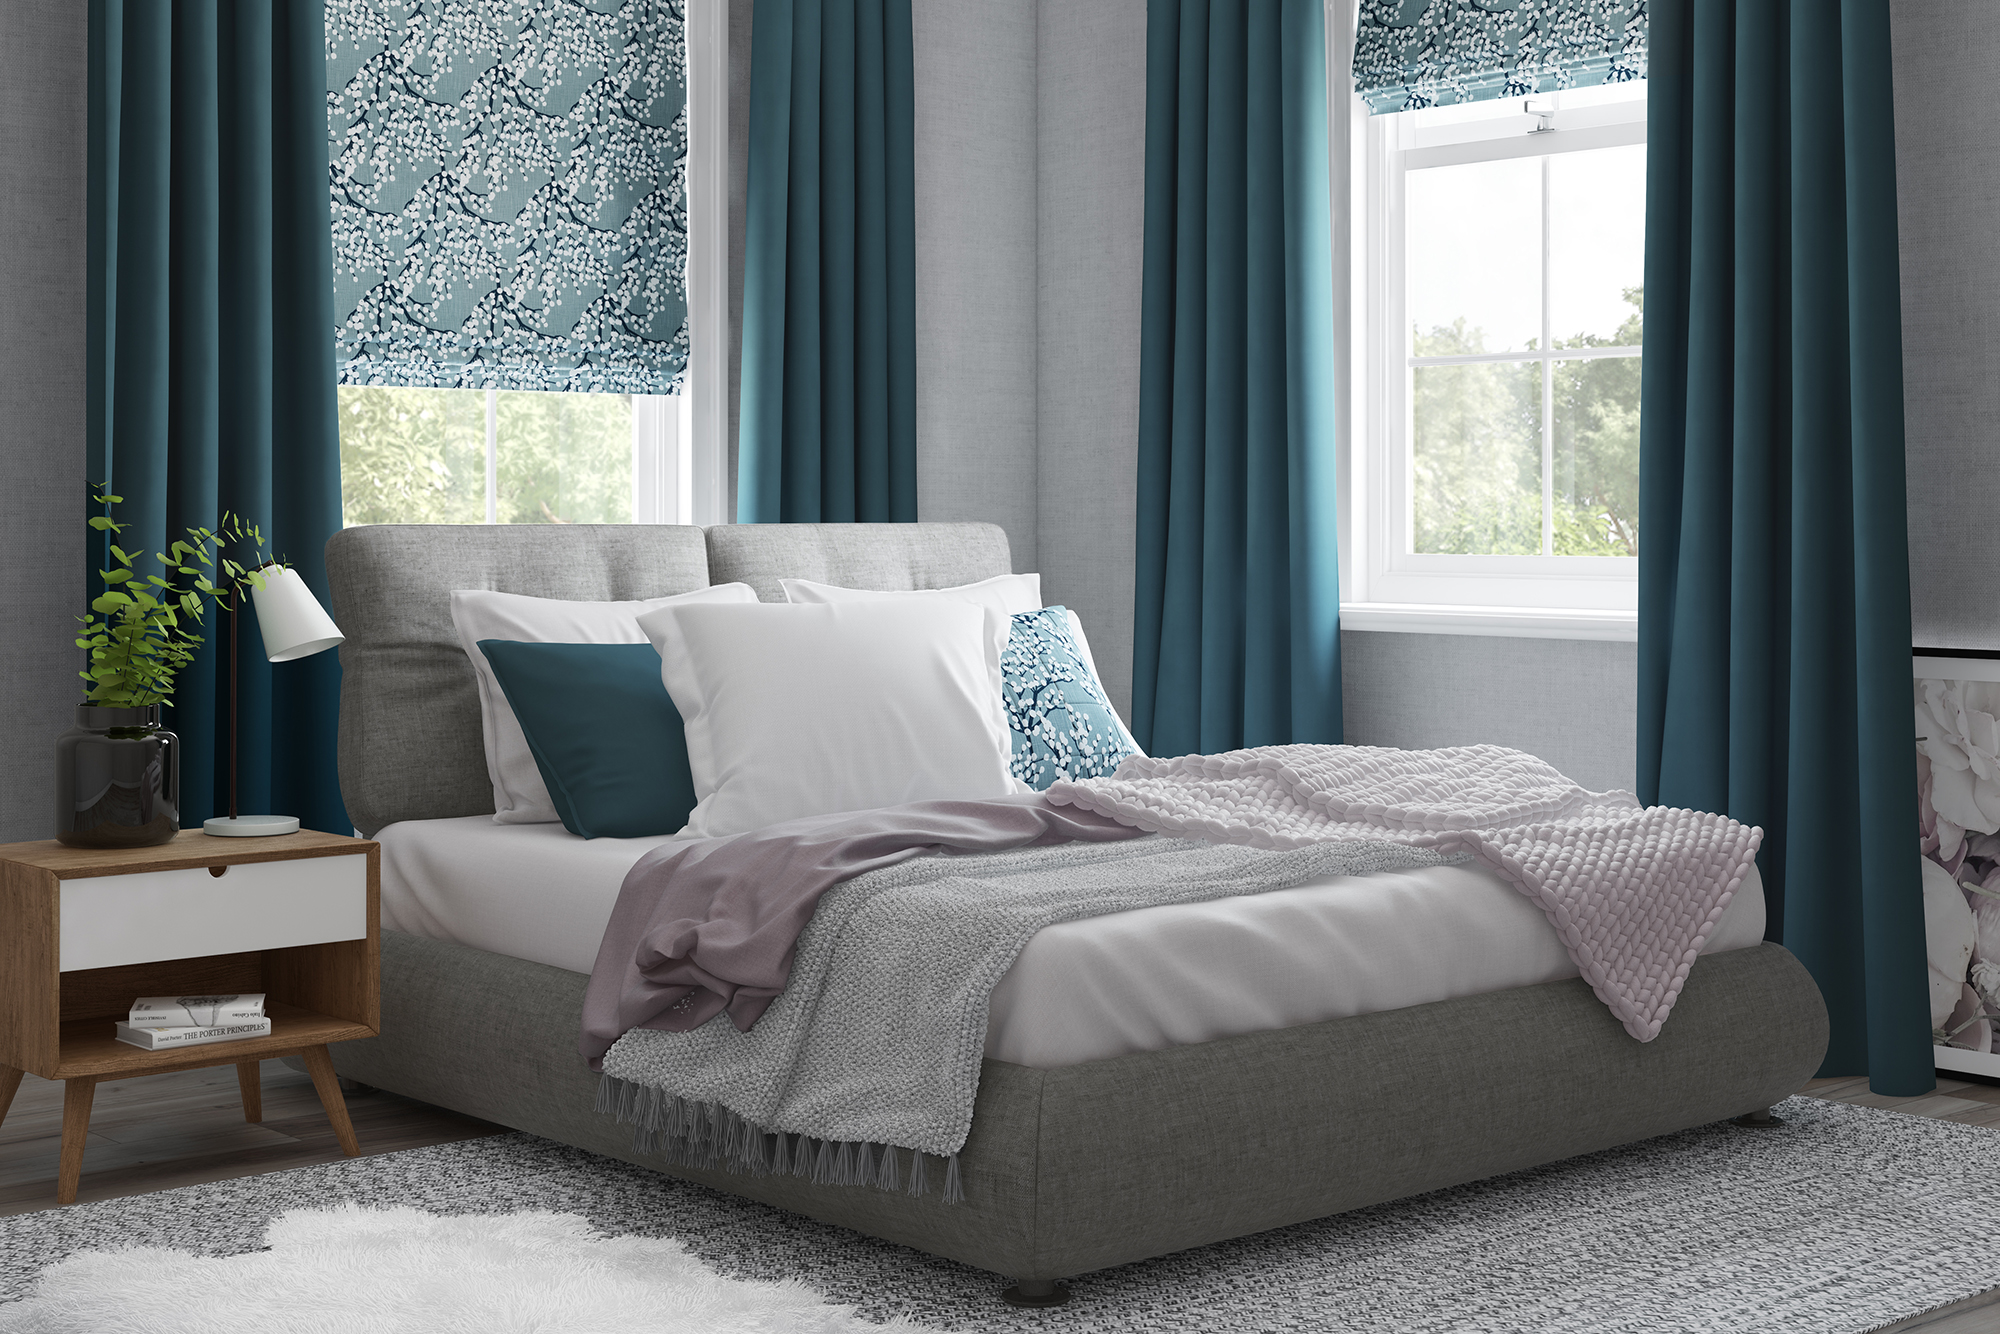 Soft Styled Bedroom Curtains Decorquip